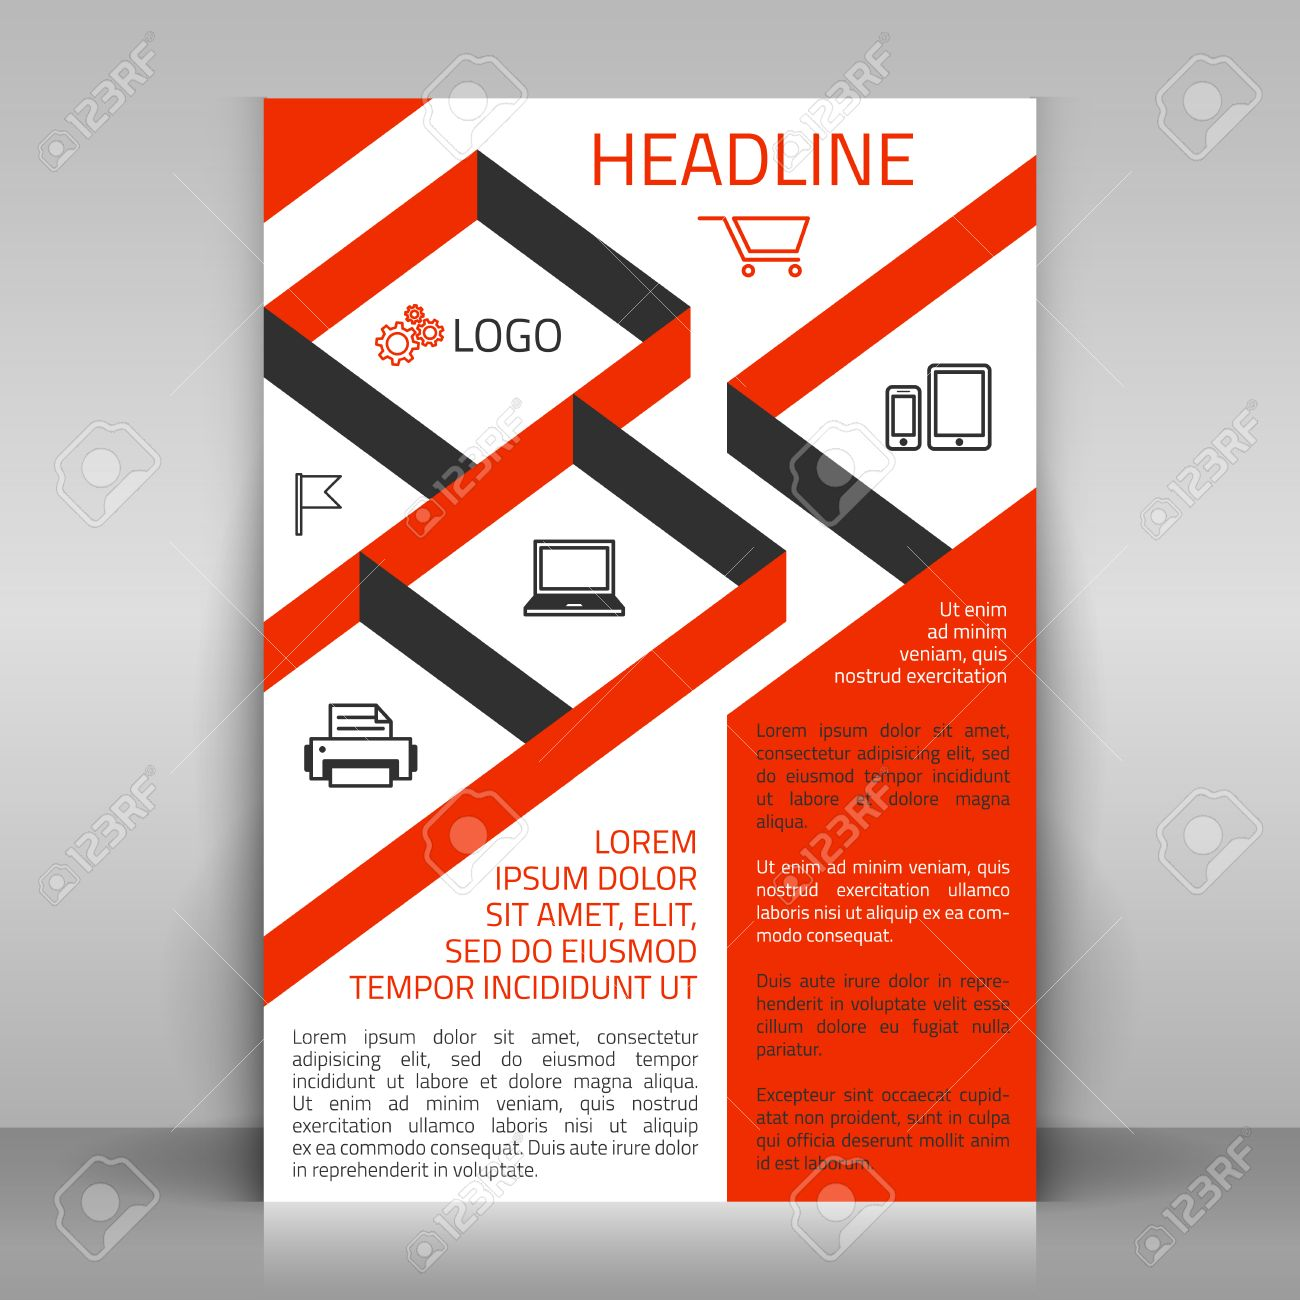 Business flyer design poster template vector layout with orange business flyer design poster template vector layout with orange diagonal elements and icons flashek Image collections